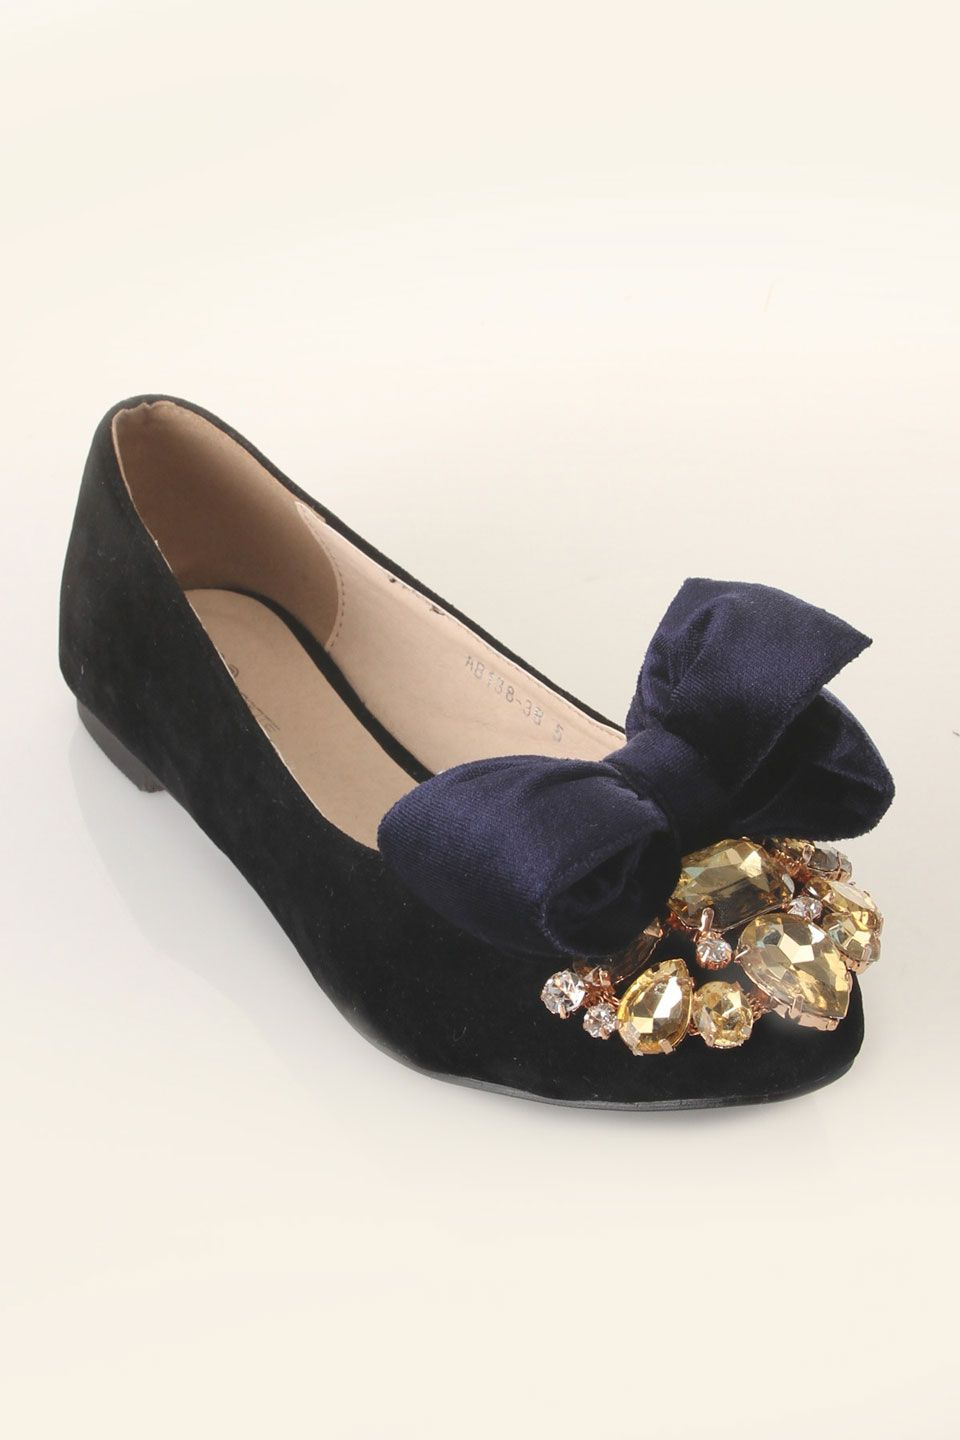 Lovely DIY Lace Up Ballet Flats Lovely DIY Lace Up Ballet Flats new foto